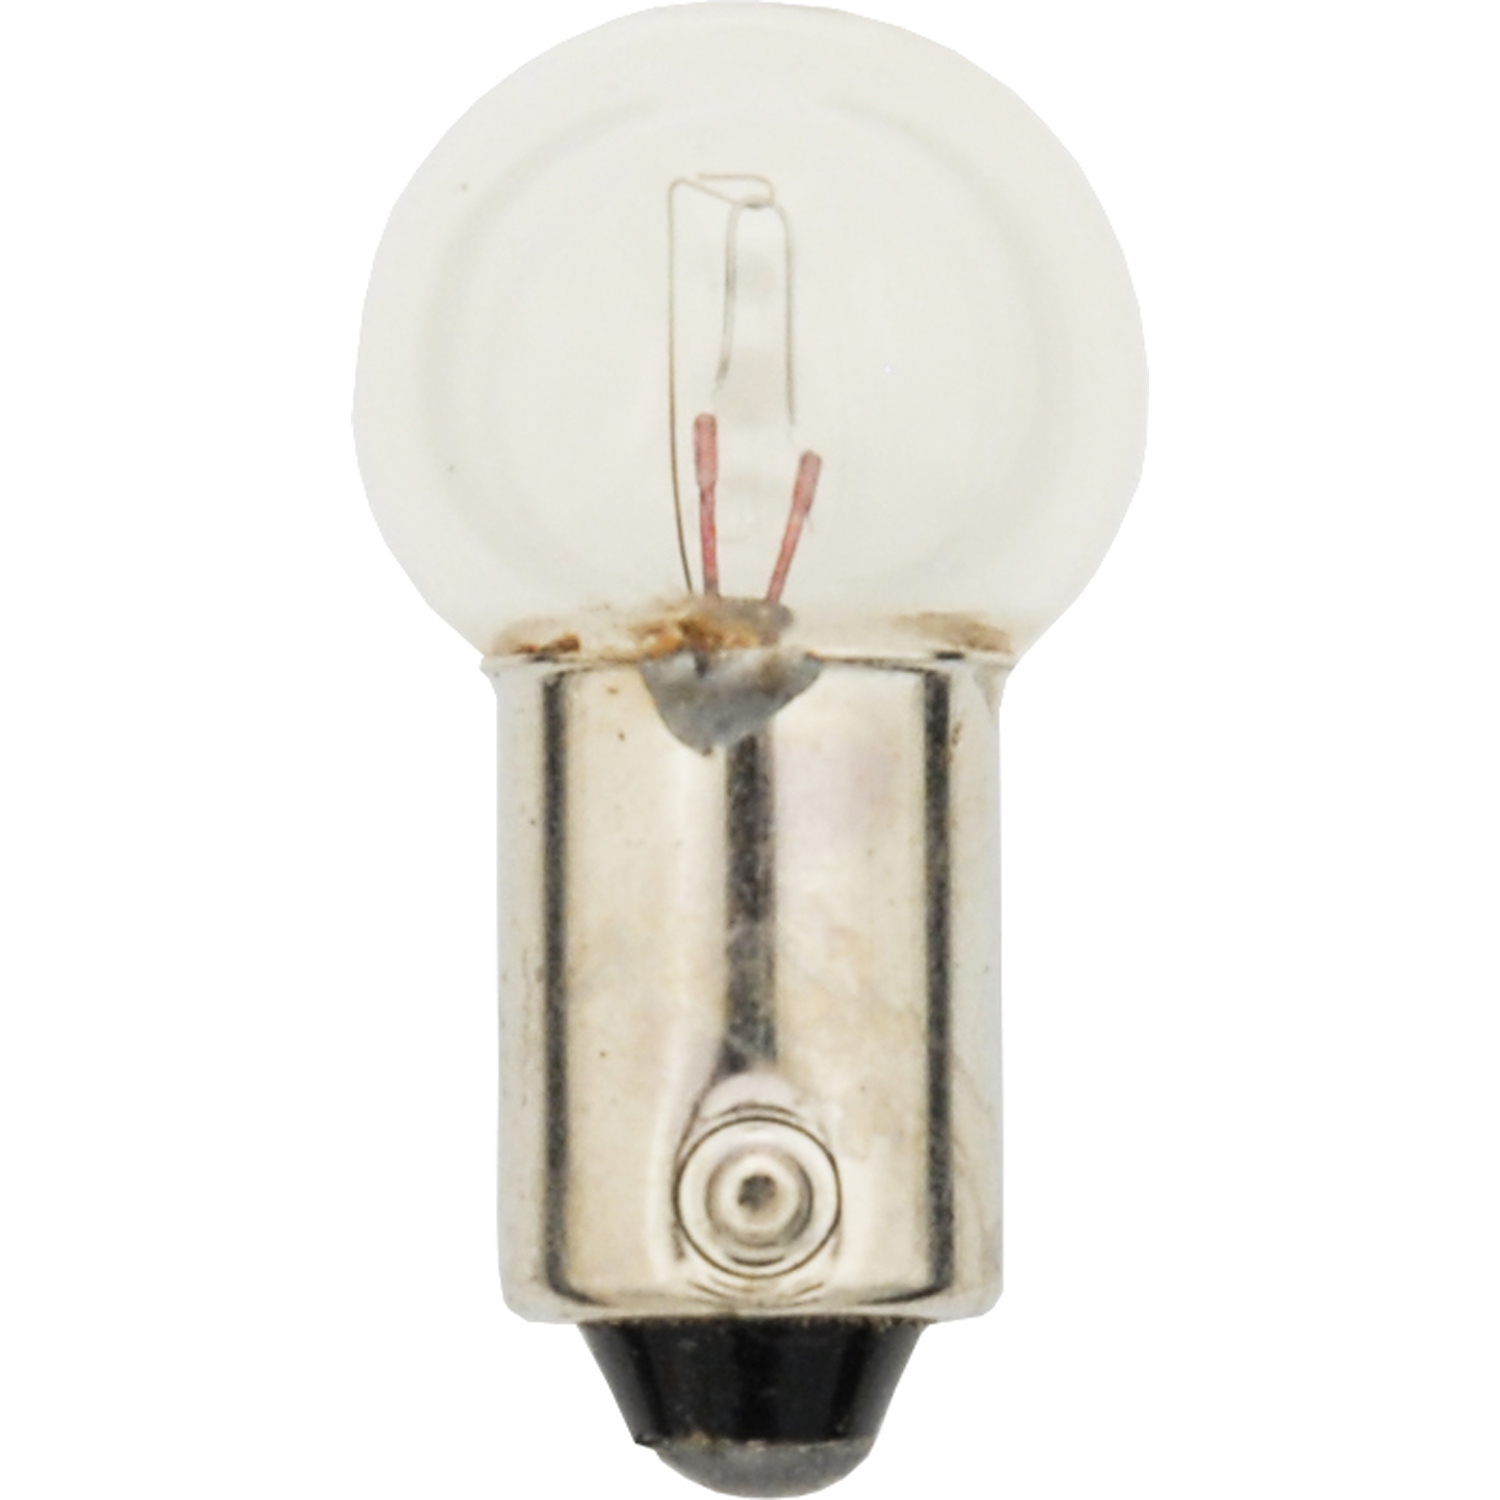 SYLVANIA RETAIL PACKS - Instrument Panel Light Bulb - SYR 57.BP2